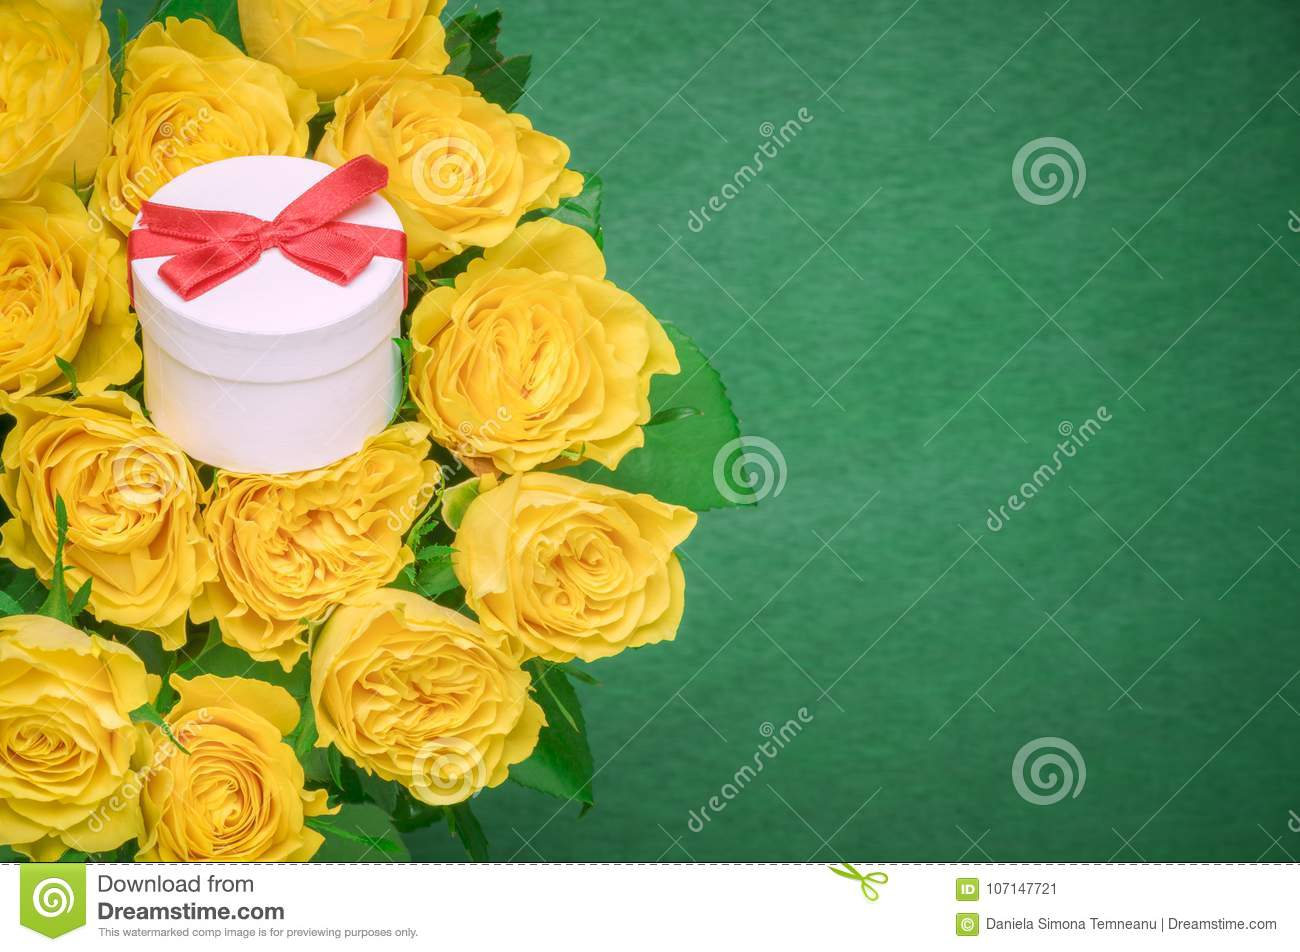 Roses Bouquet And A Gift Box Stock Image - Image of frame, card ...